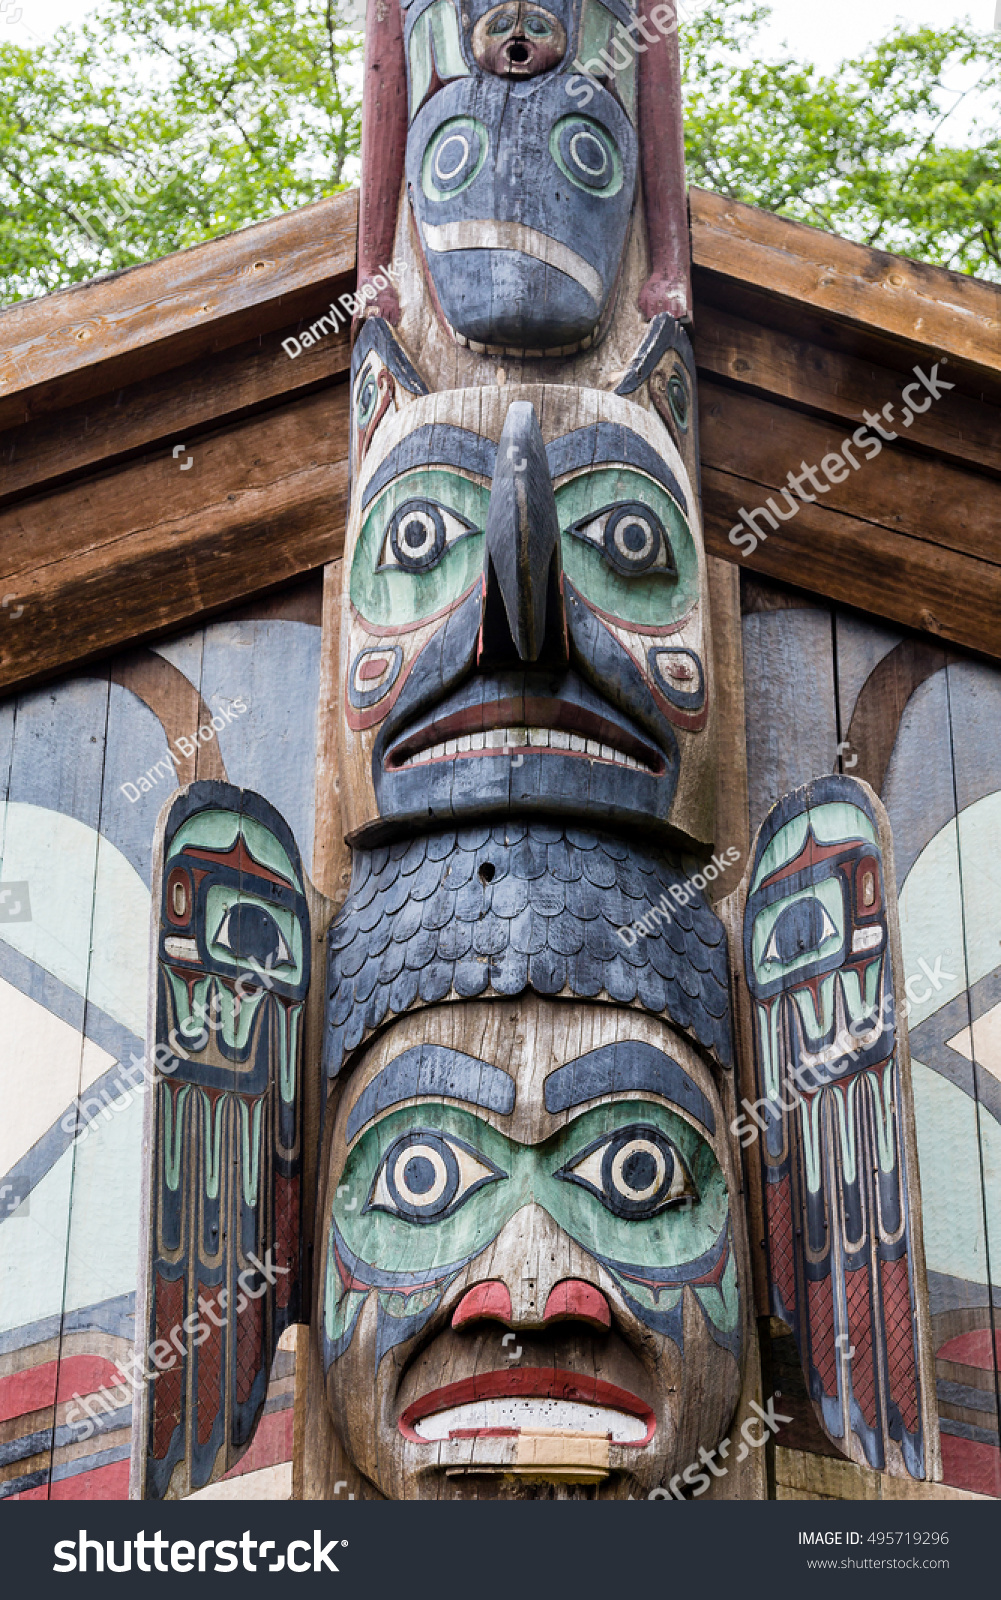 Ancient Inuit Totem Alaska Stock Photo 495719296 ...